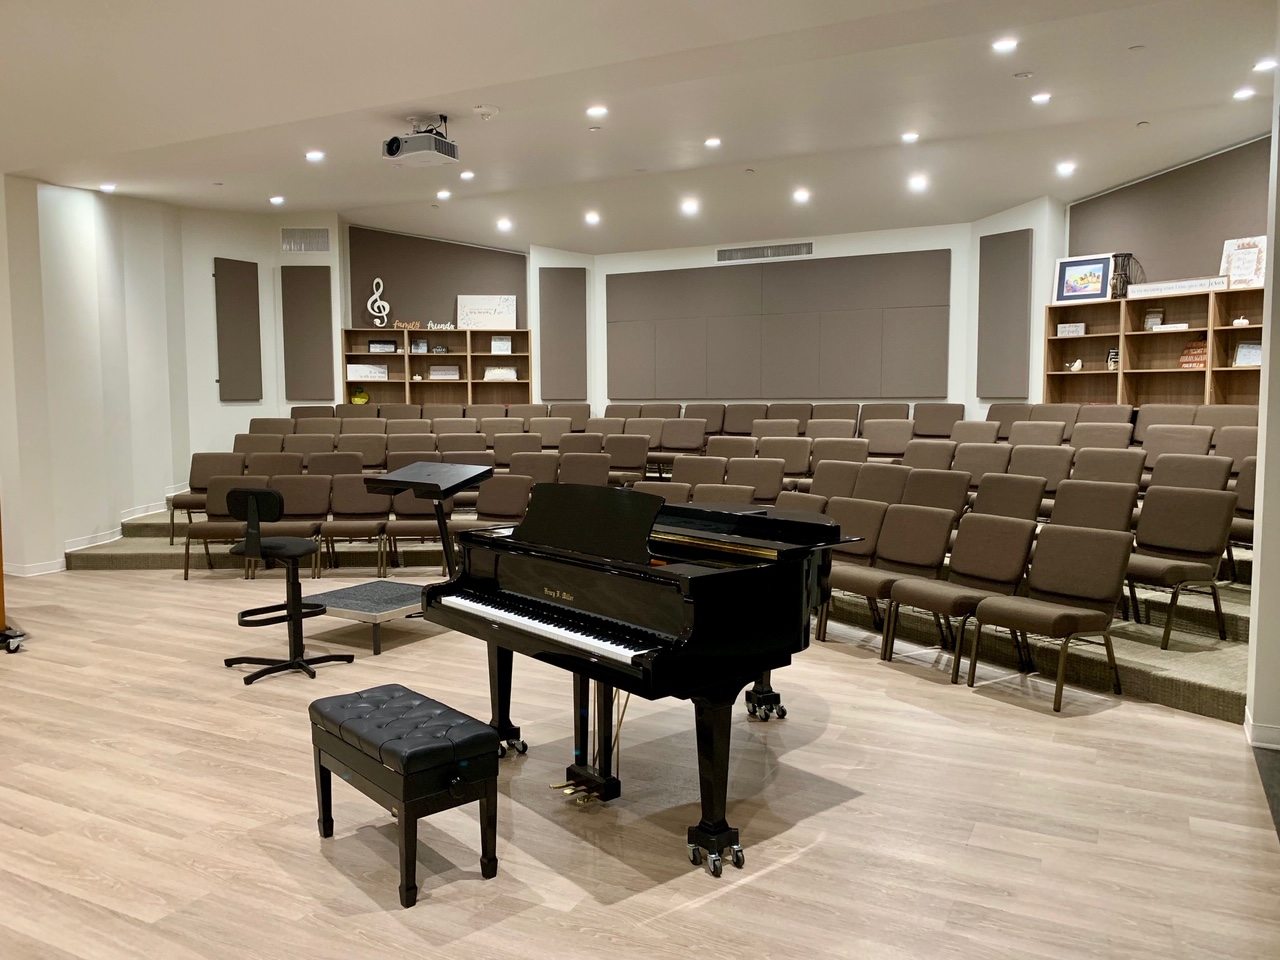 Choir Rehearsal Room